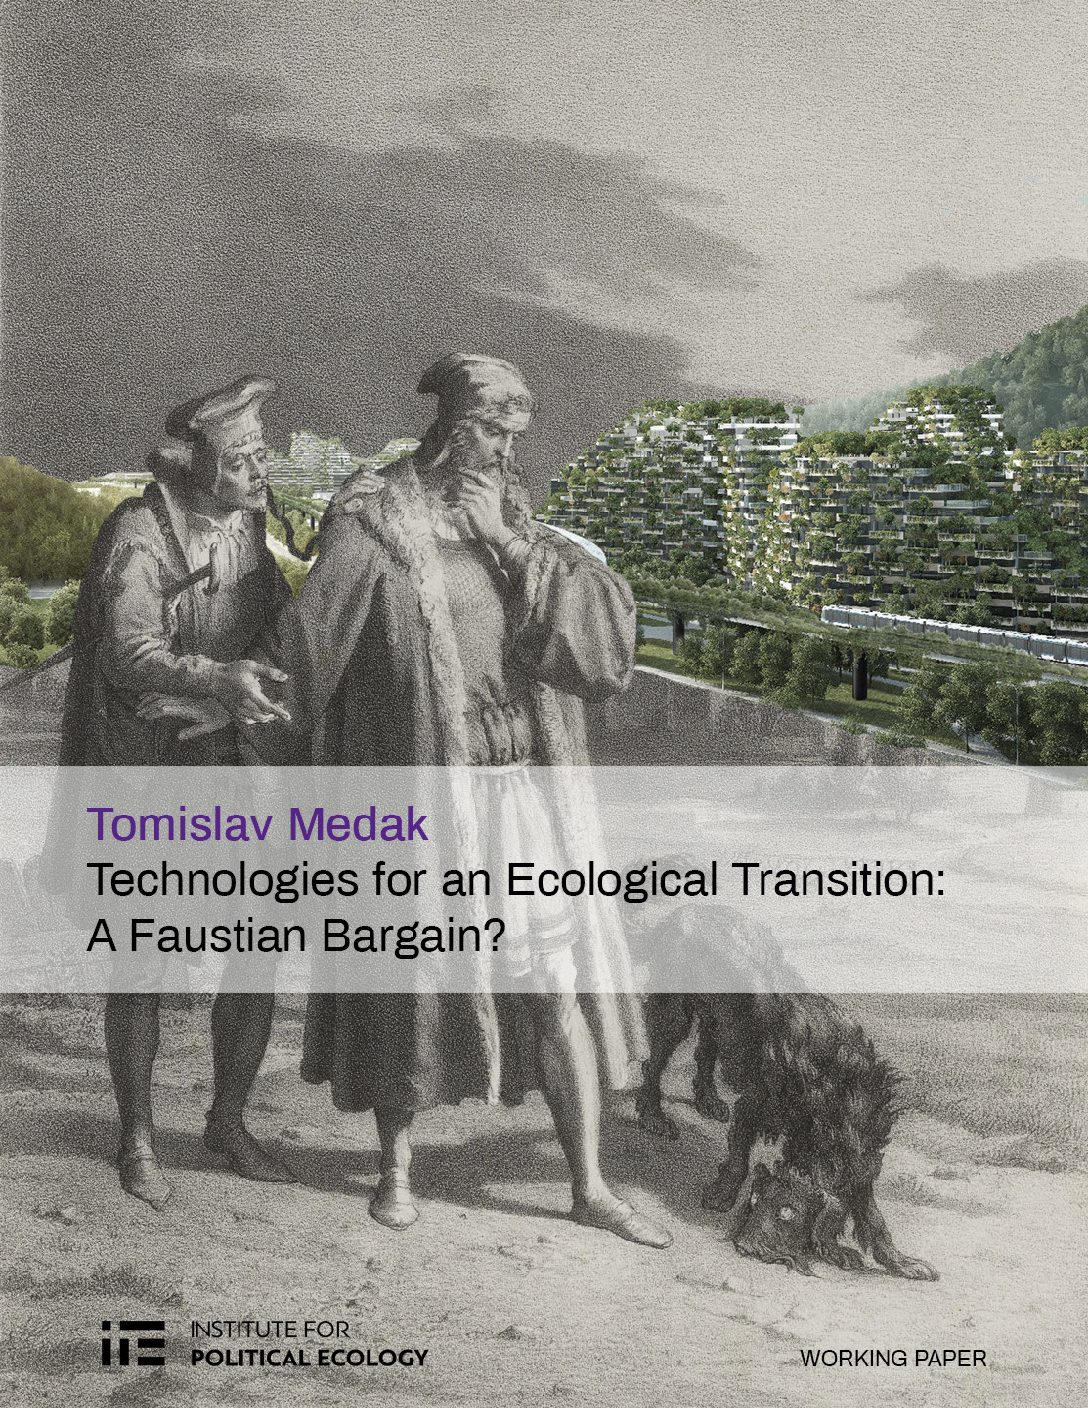 Technologies for an Ecological Transition - A Faustian Bargain?